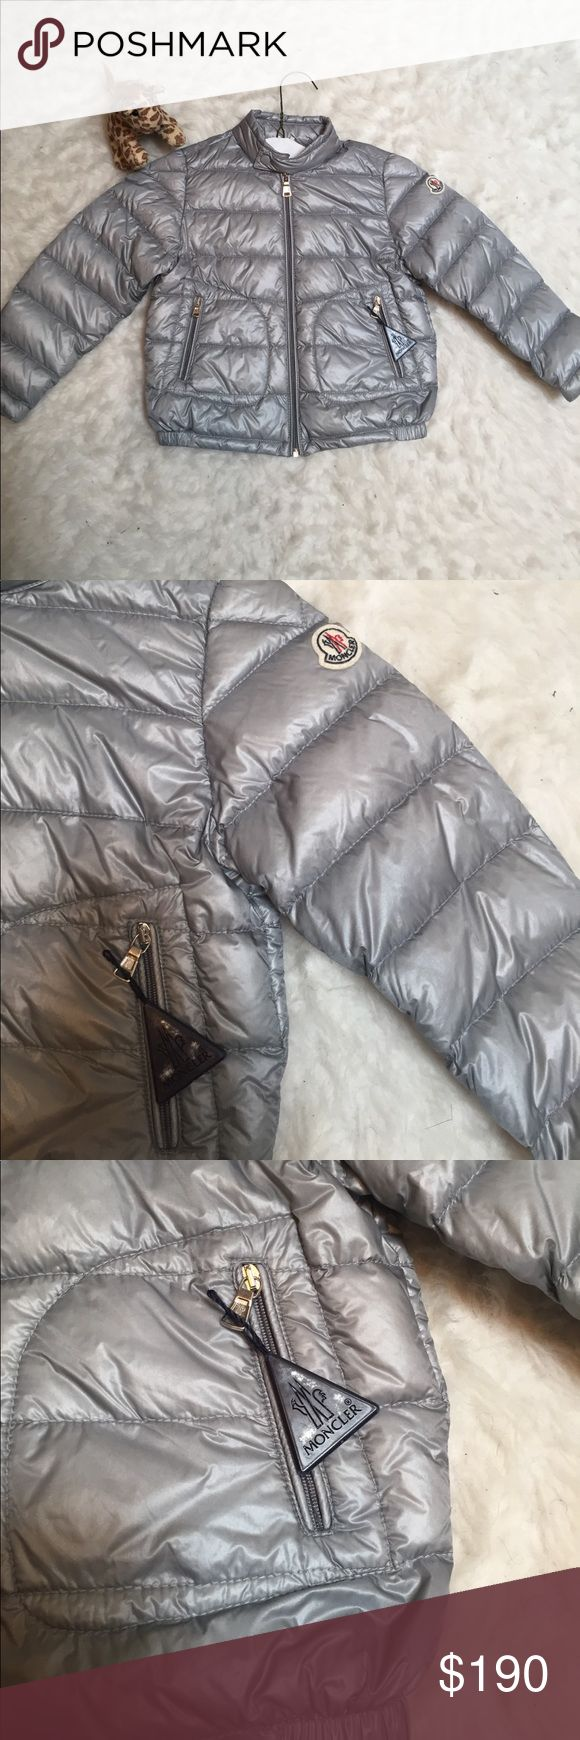 Moncler puff jacket Gray puff jacket filled with real down feathers washed and sterilized. 90% down and 10% feather.  Beautiful jacket Moncler Jackets & Coats Puffers